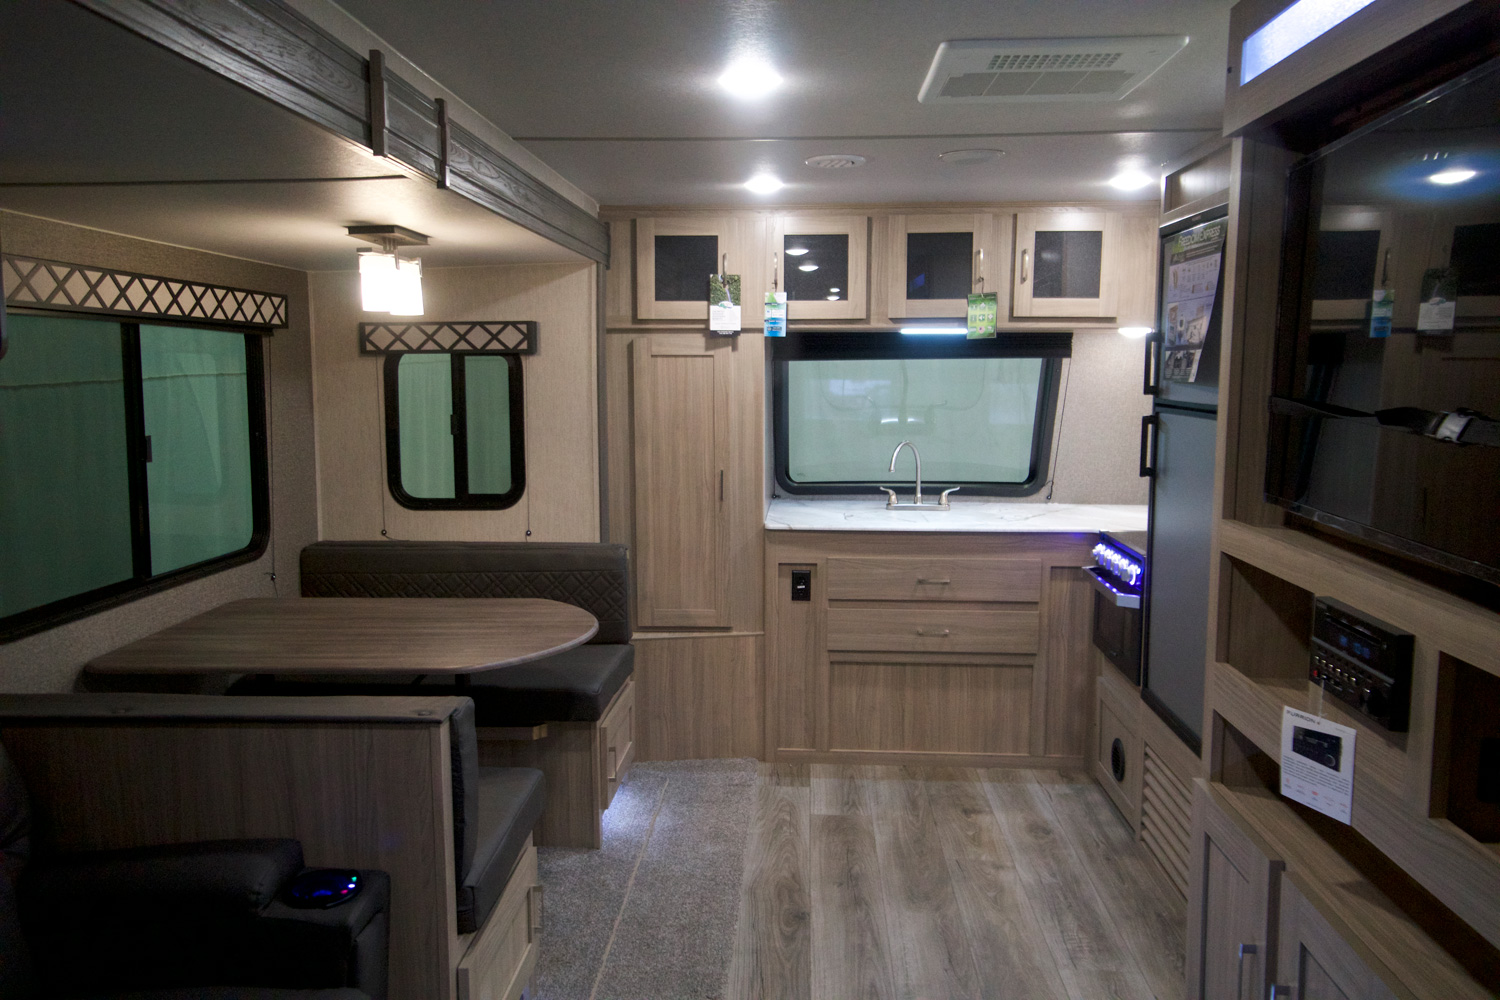 2021 FOREST RIVER COACHMEN FREEDOM EXPRESS 259FKDS full